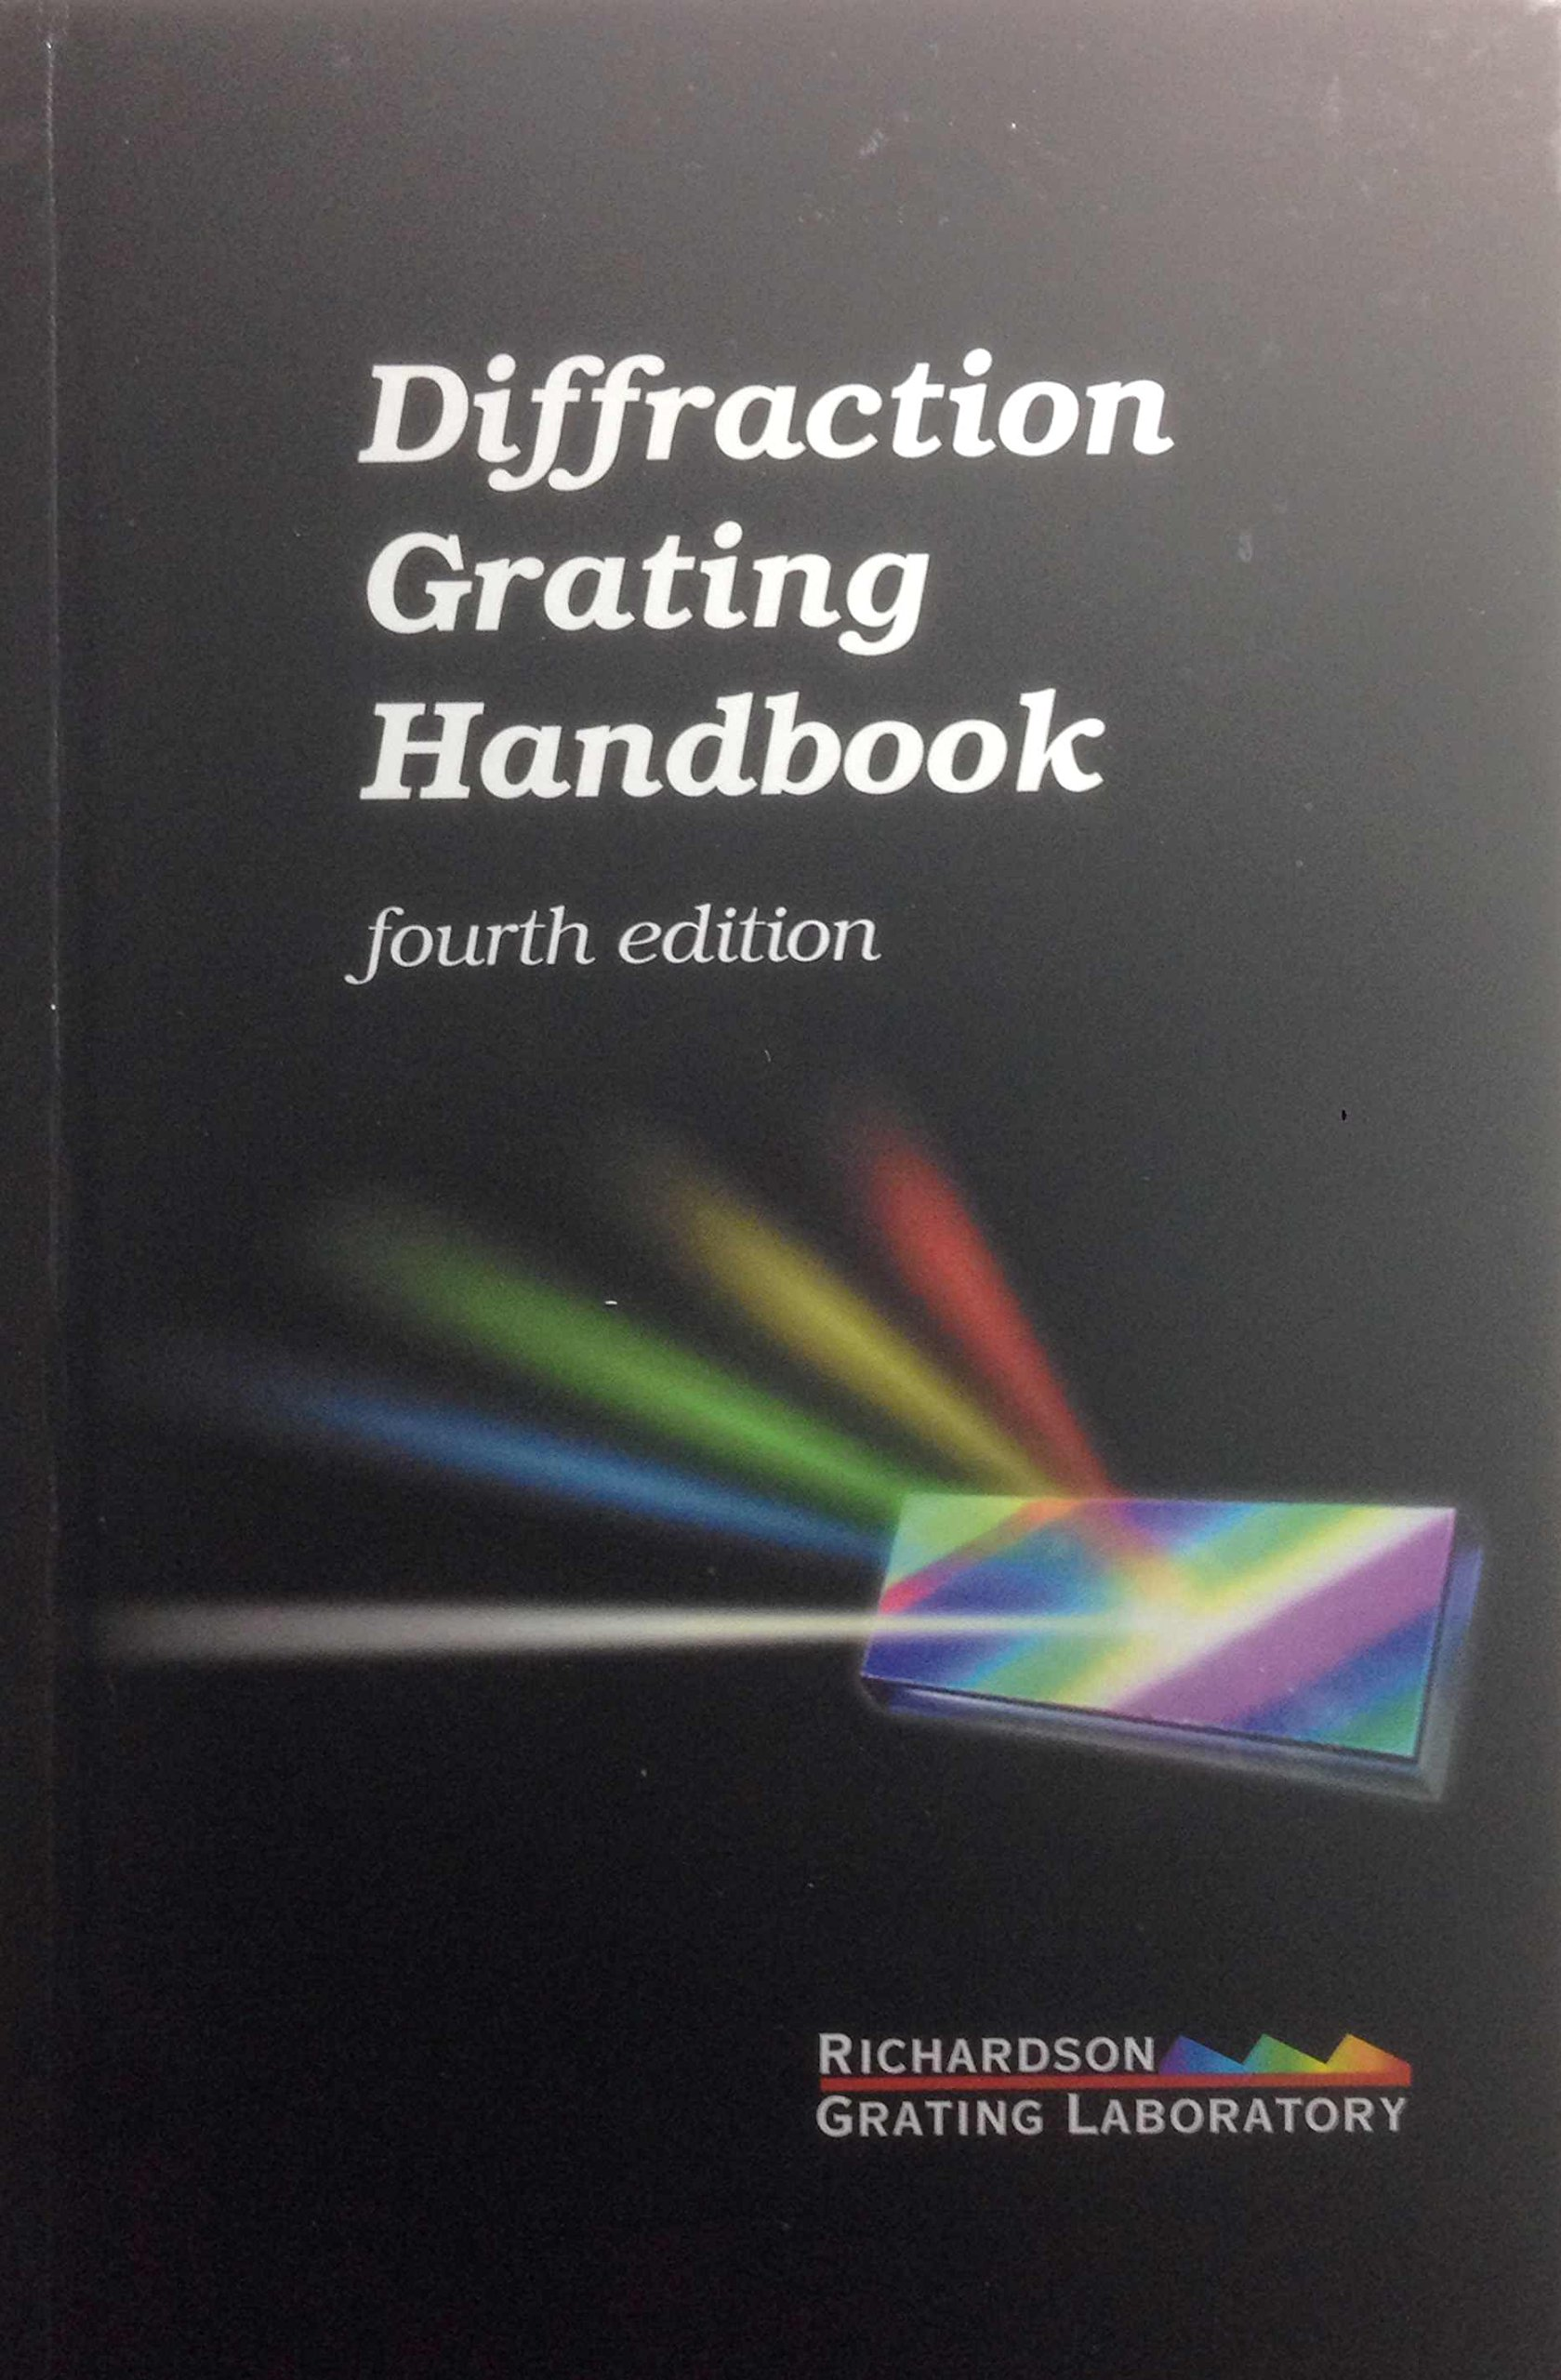 Diffraction Grating Handbook